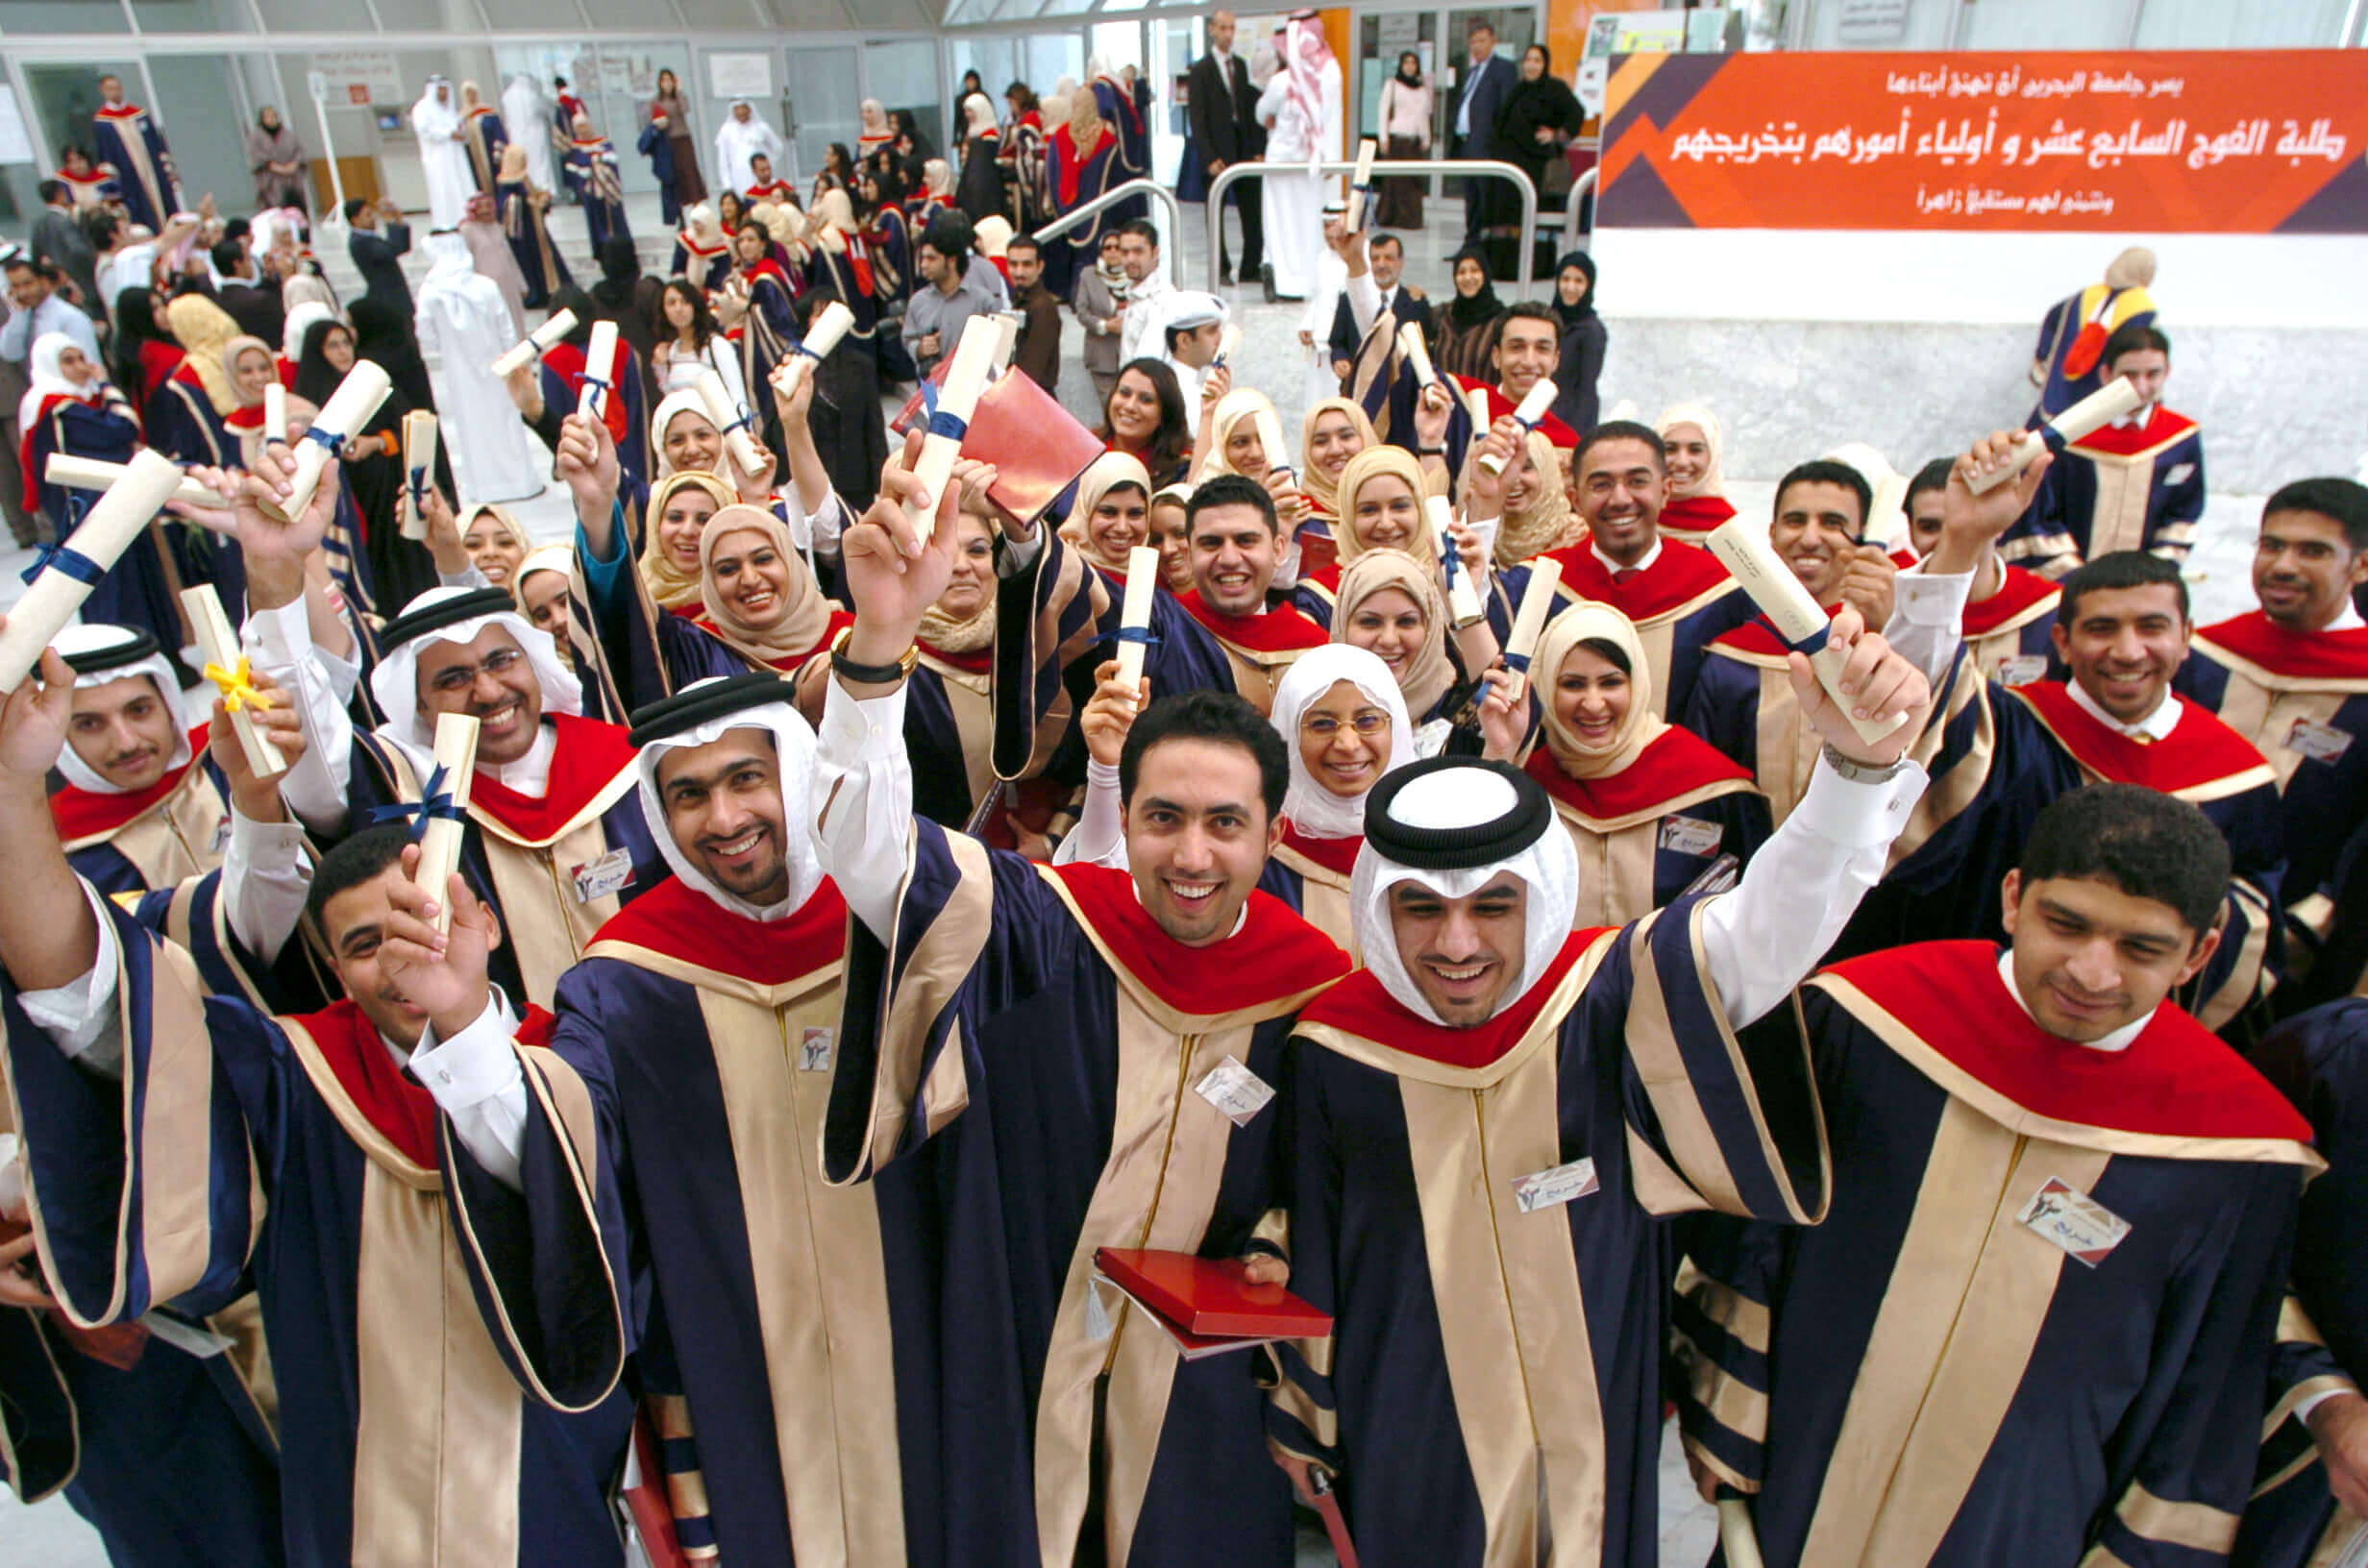 Graduates of the University of Bahrain